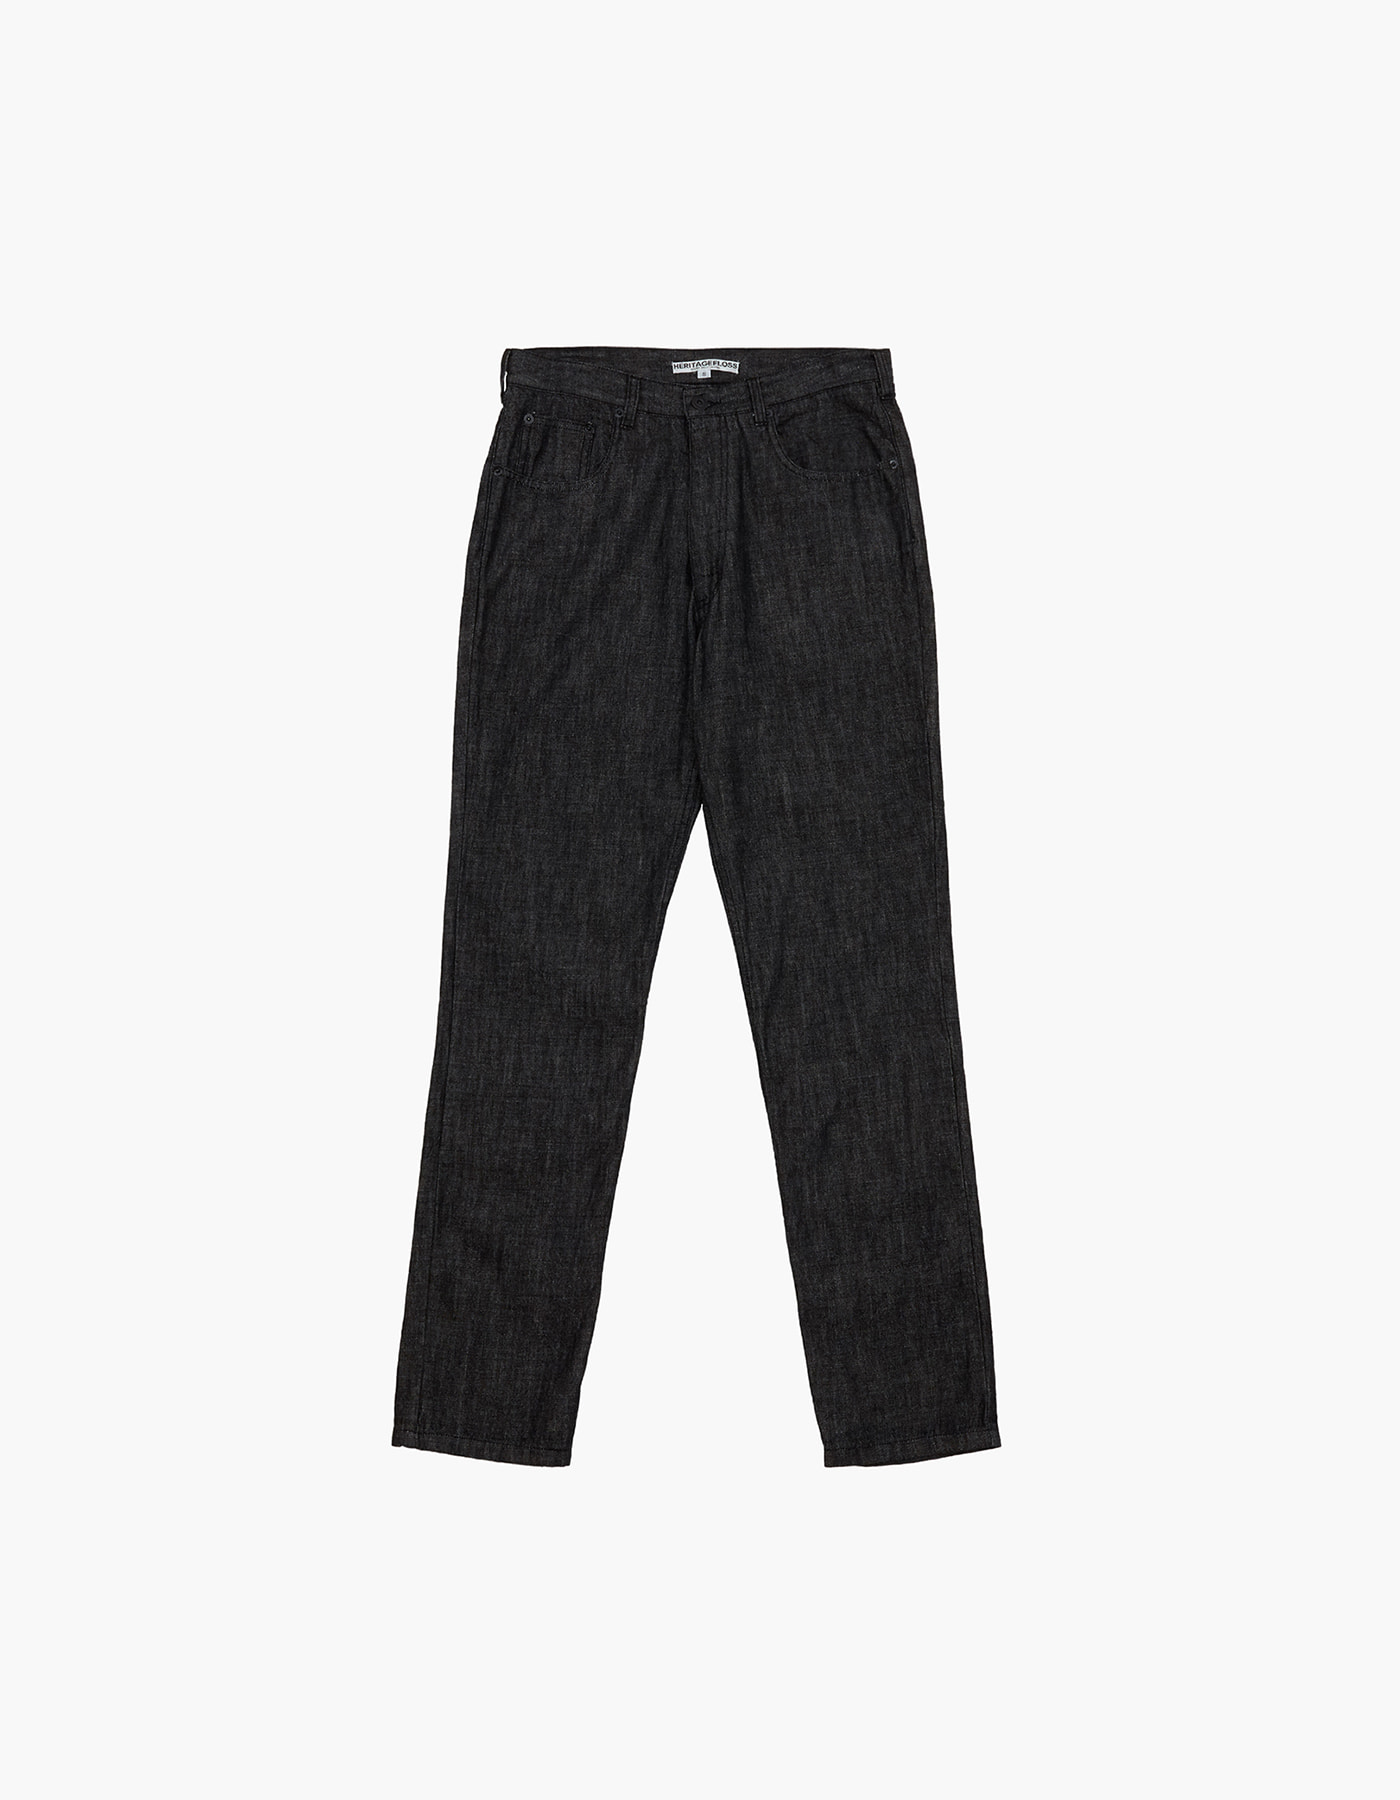 YARN DYED DENIM PANTS / BLACK